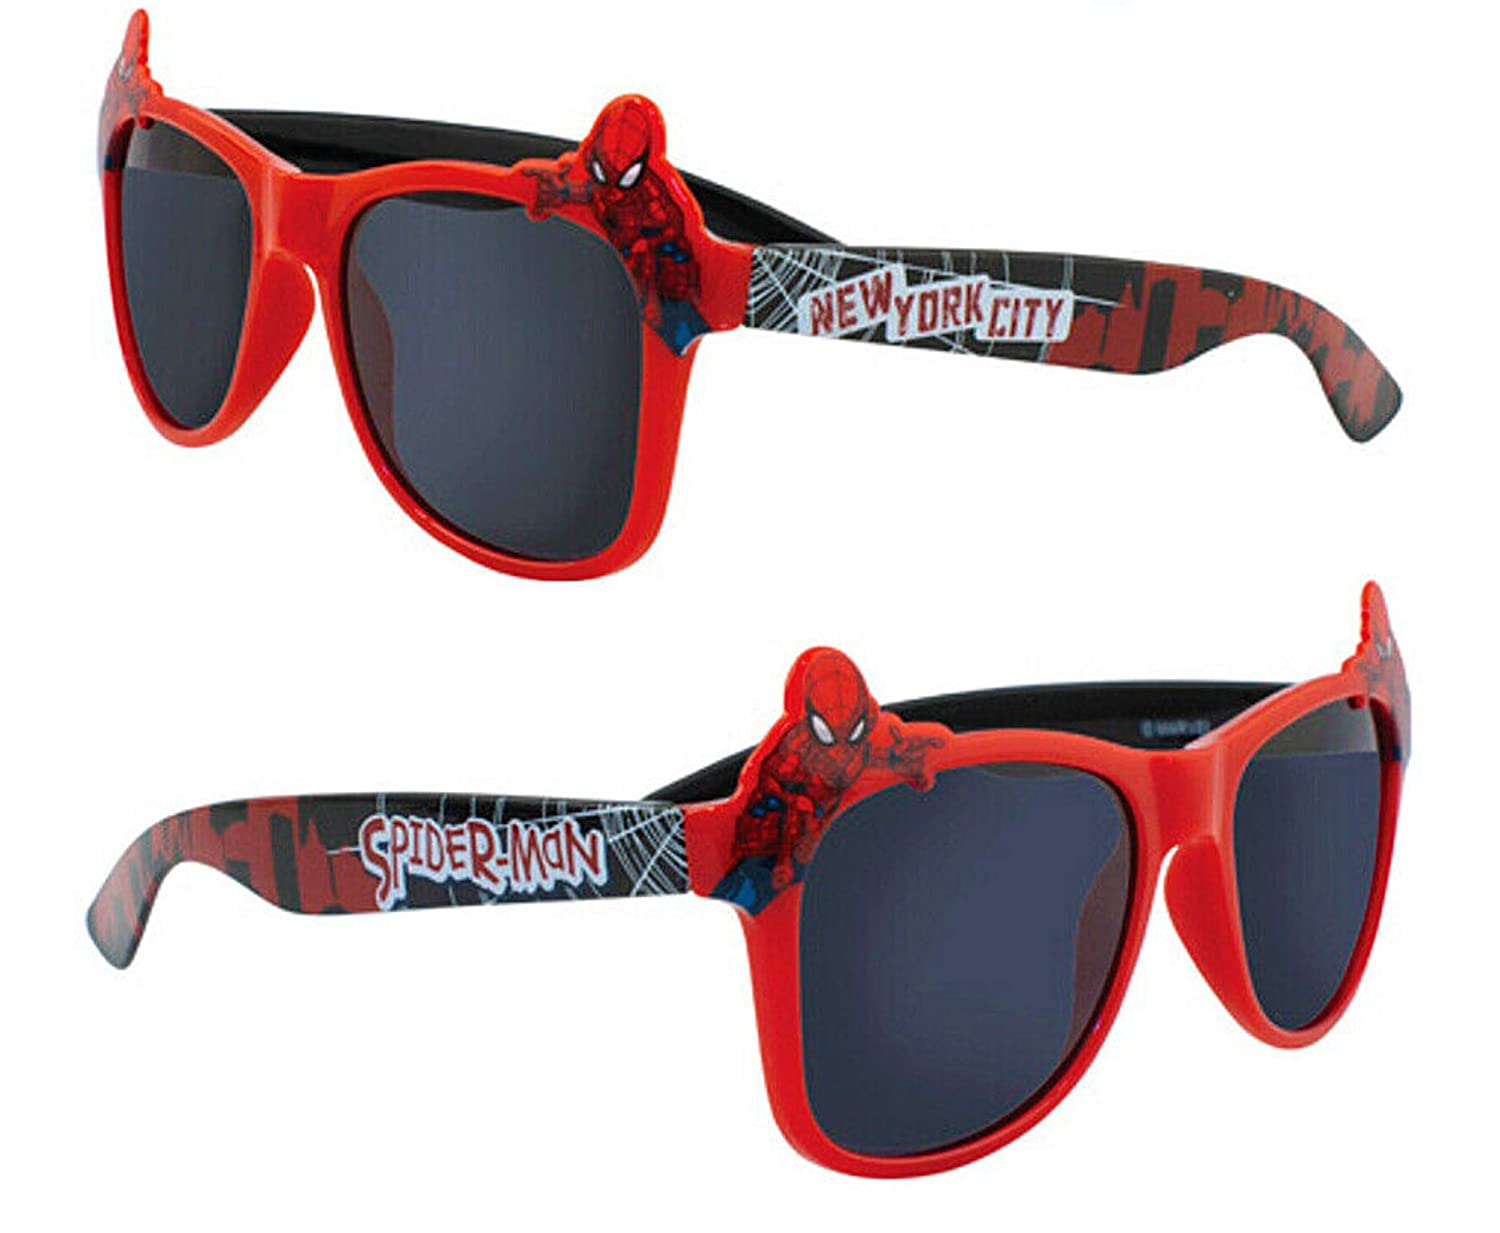 Childrens Sunglasses Marvel Spiderman Genuine Branded Product 100/% UV Rating SP21